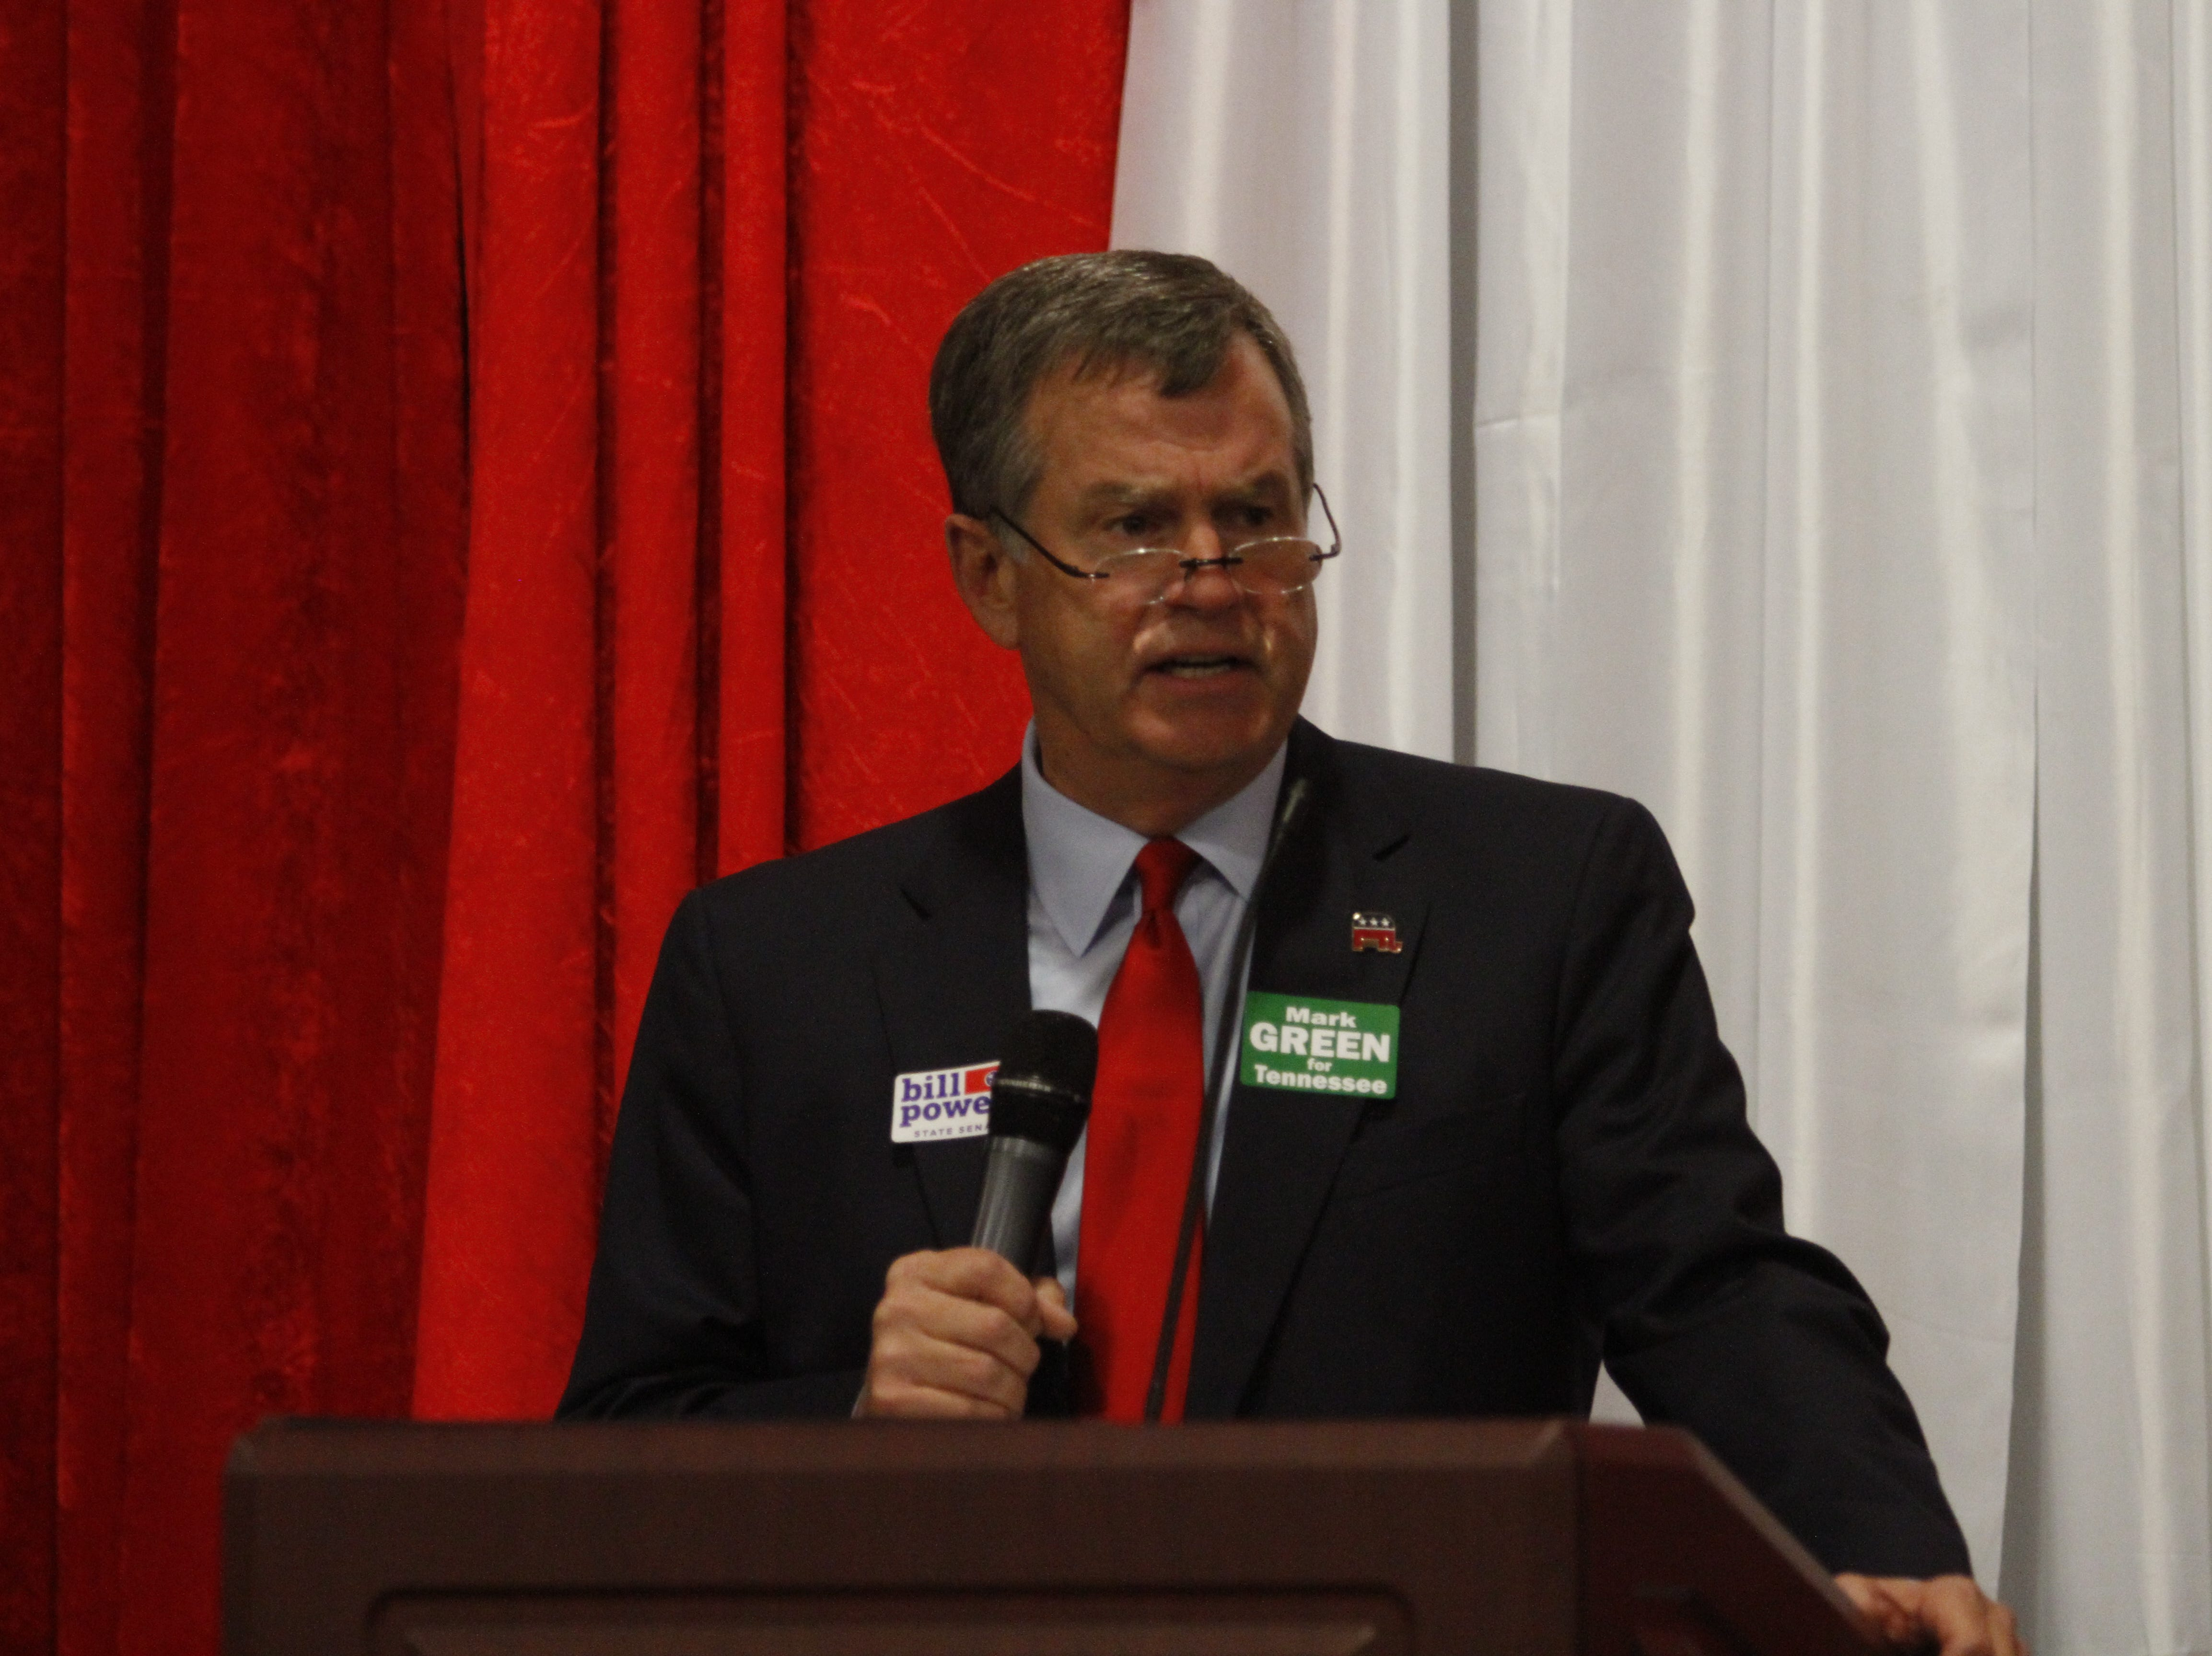 Republican state Senate candidate Bill Powers at the Montgomery County Republican Party Lincoln Reagan Dinner at Wilma Rudolph Event Center Friday, March 22, 2019.